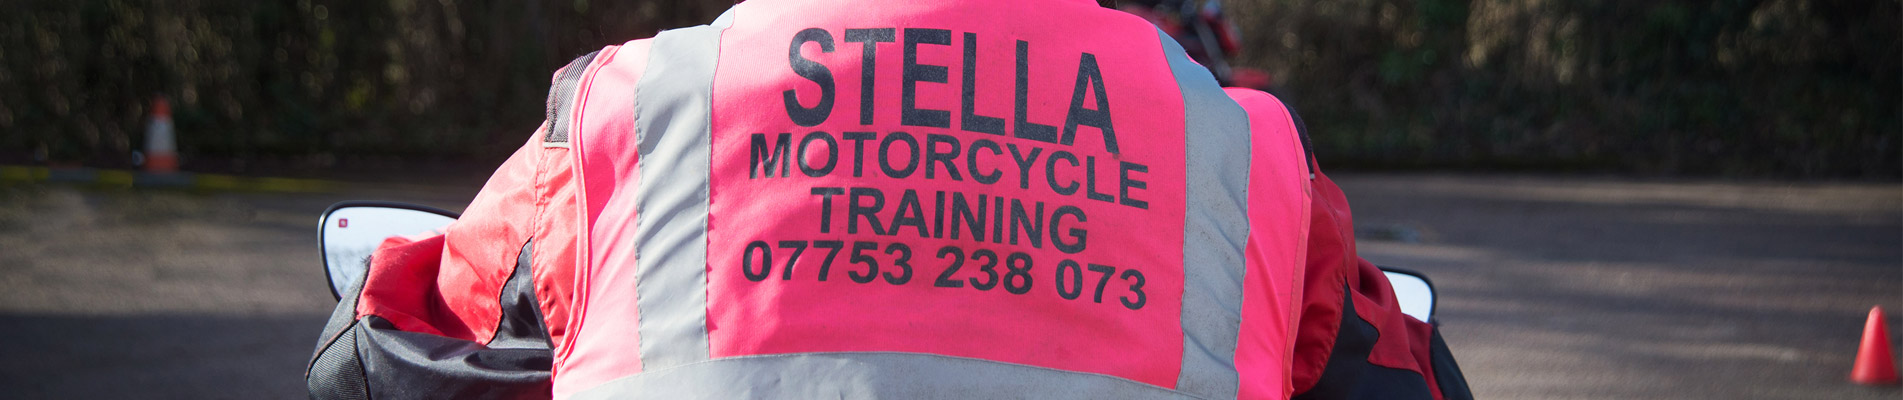 stella motorcycle training licences about us header